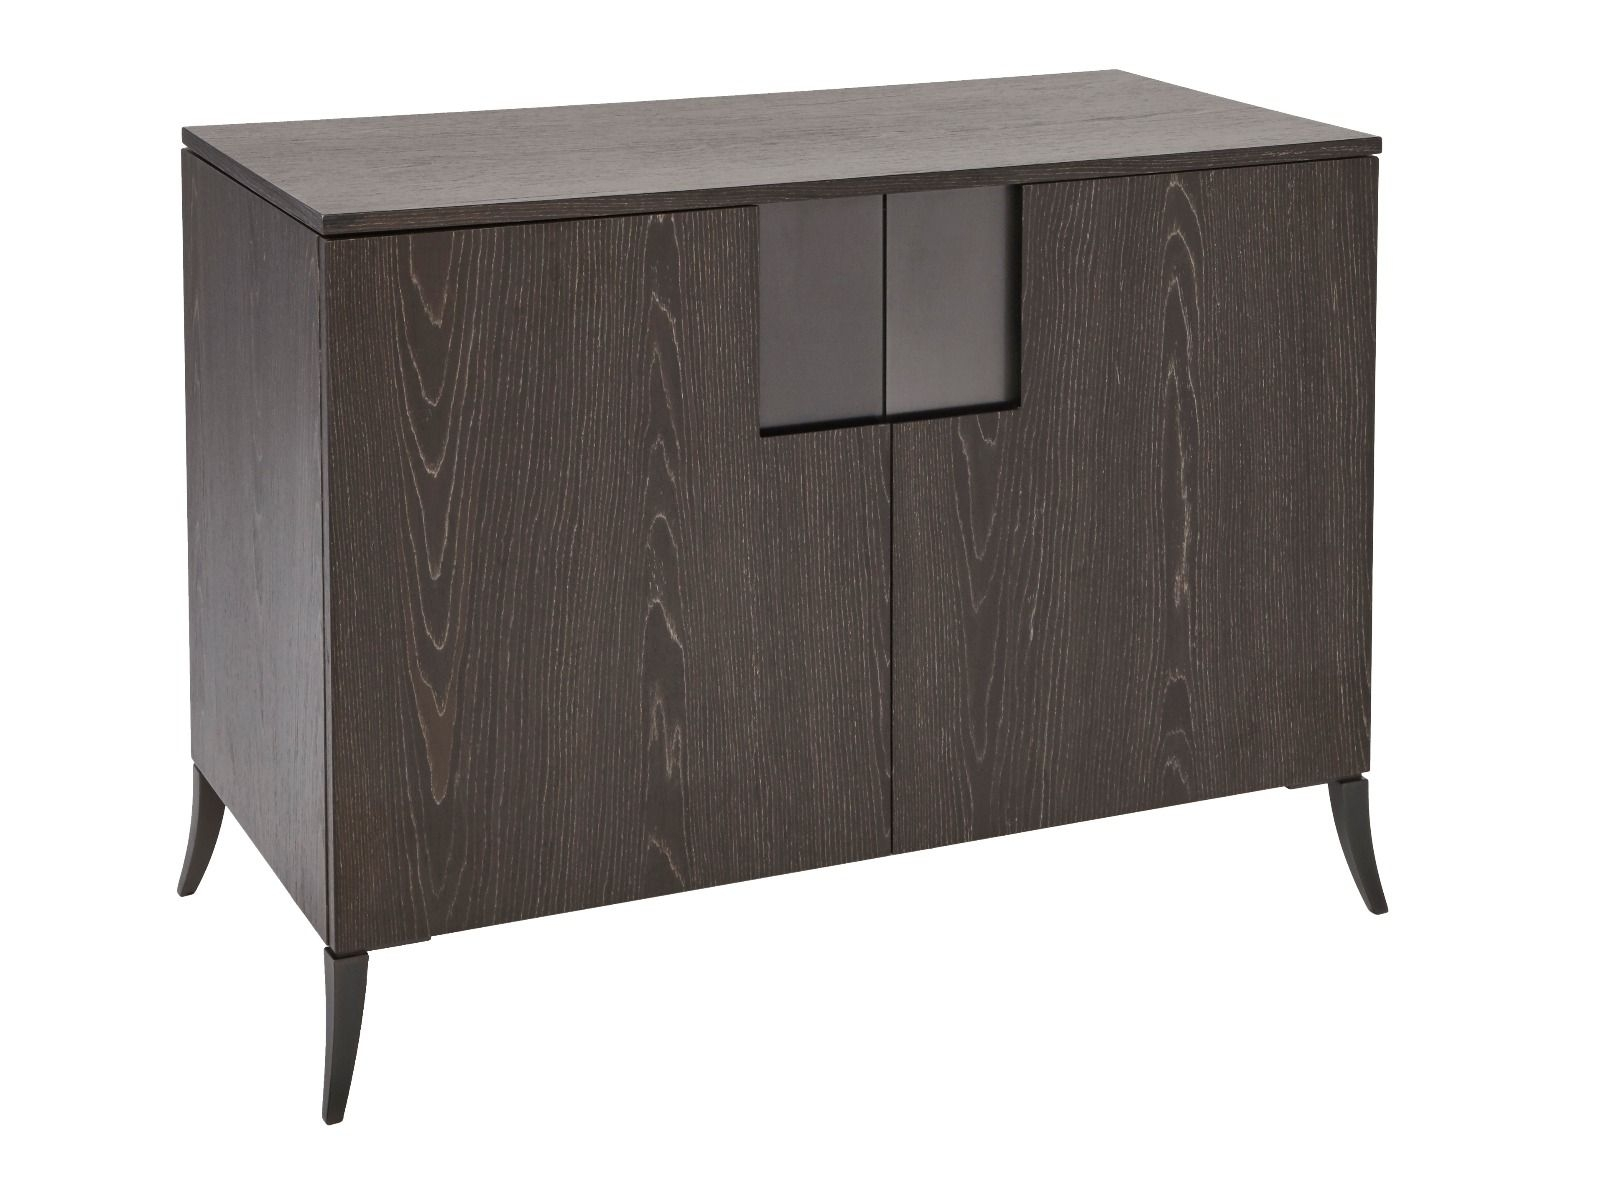 Buffet Sideboard Single Length | Collection From Gillmore for Square Brass 4 Door Sideboards (Image 5 of 30)